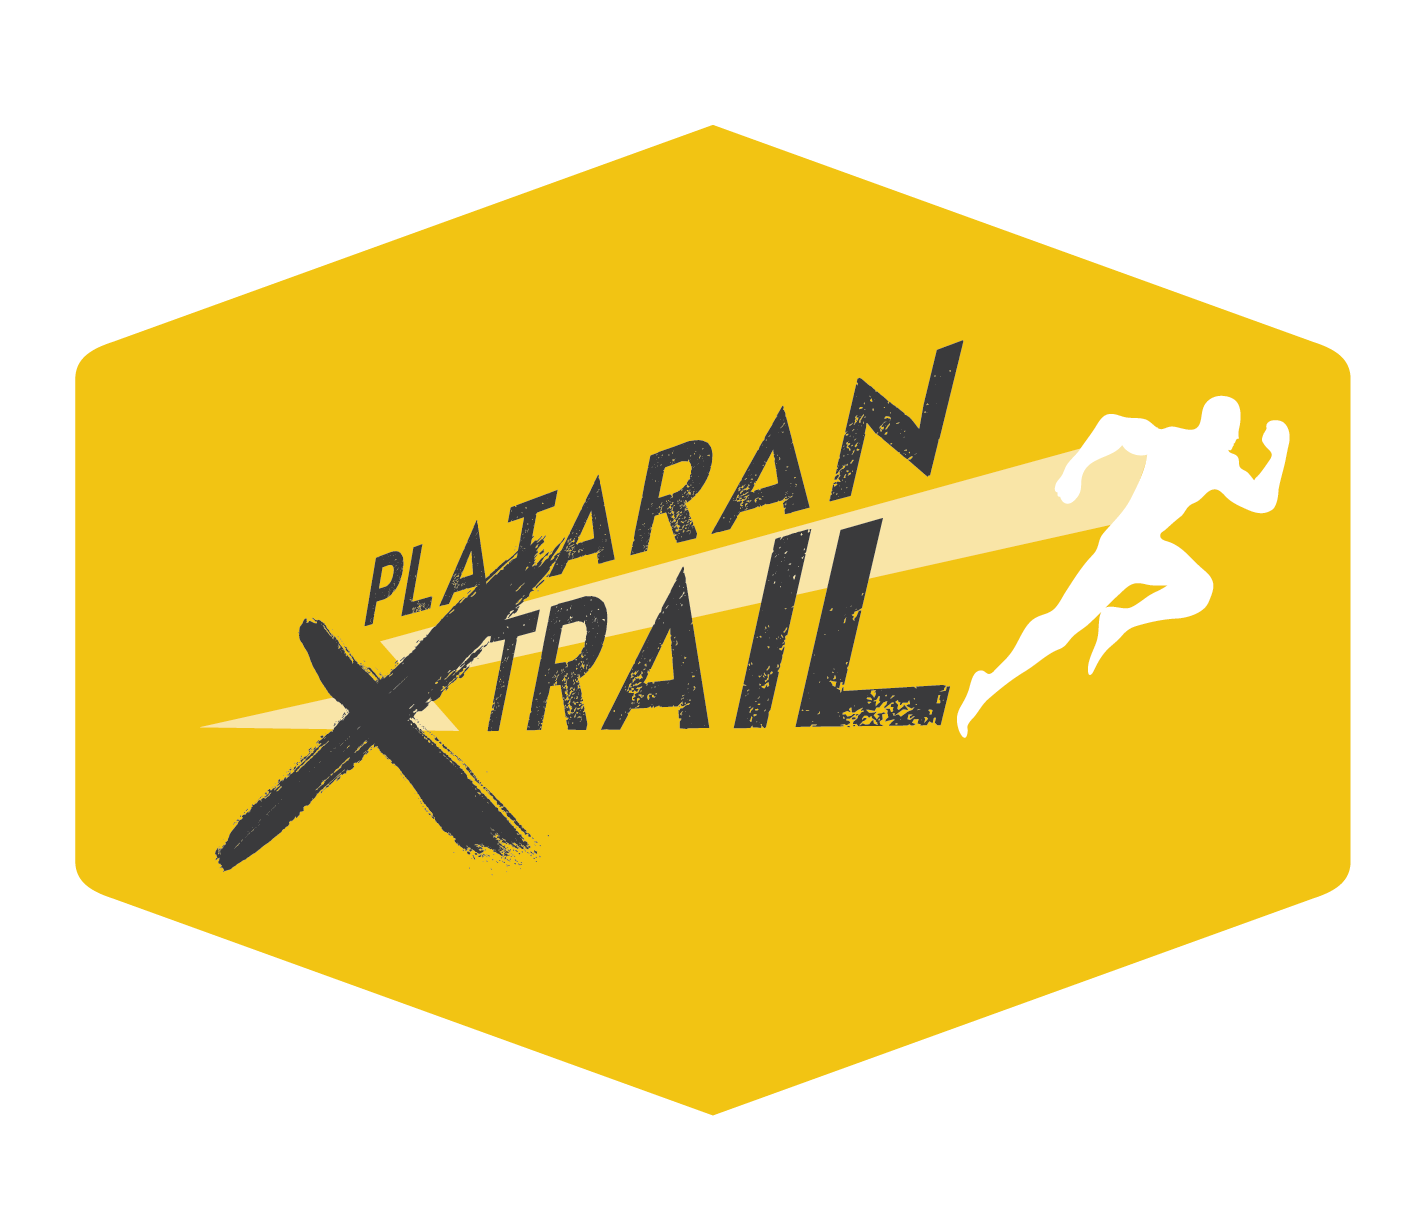 PLATARAN XTRAIL_BASIC_COLOR_without 3X-01.png